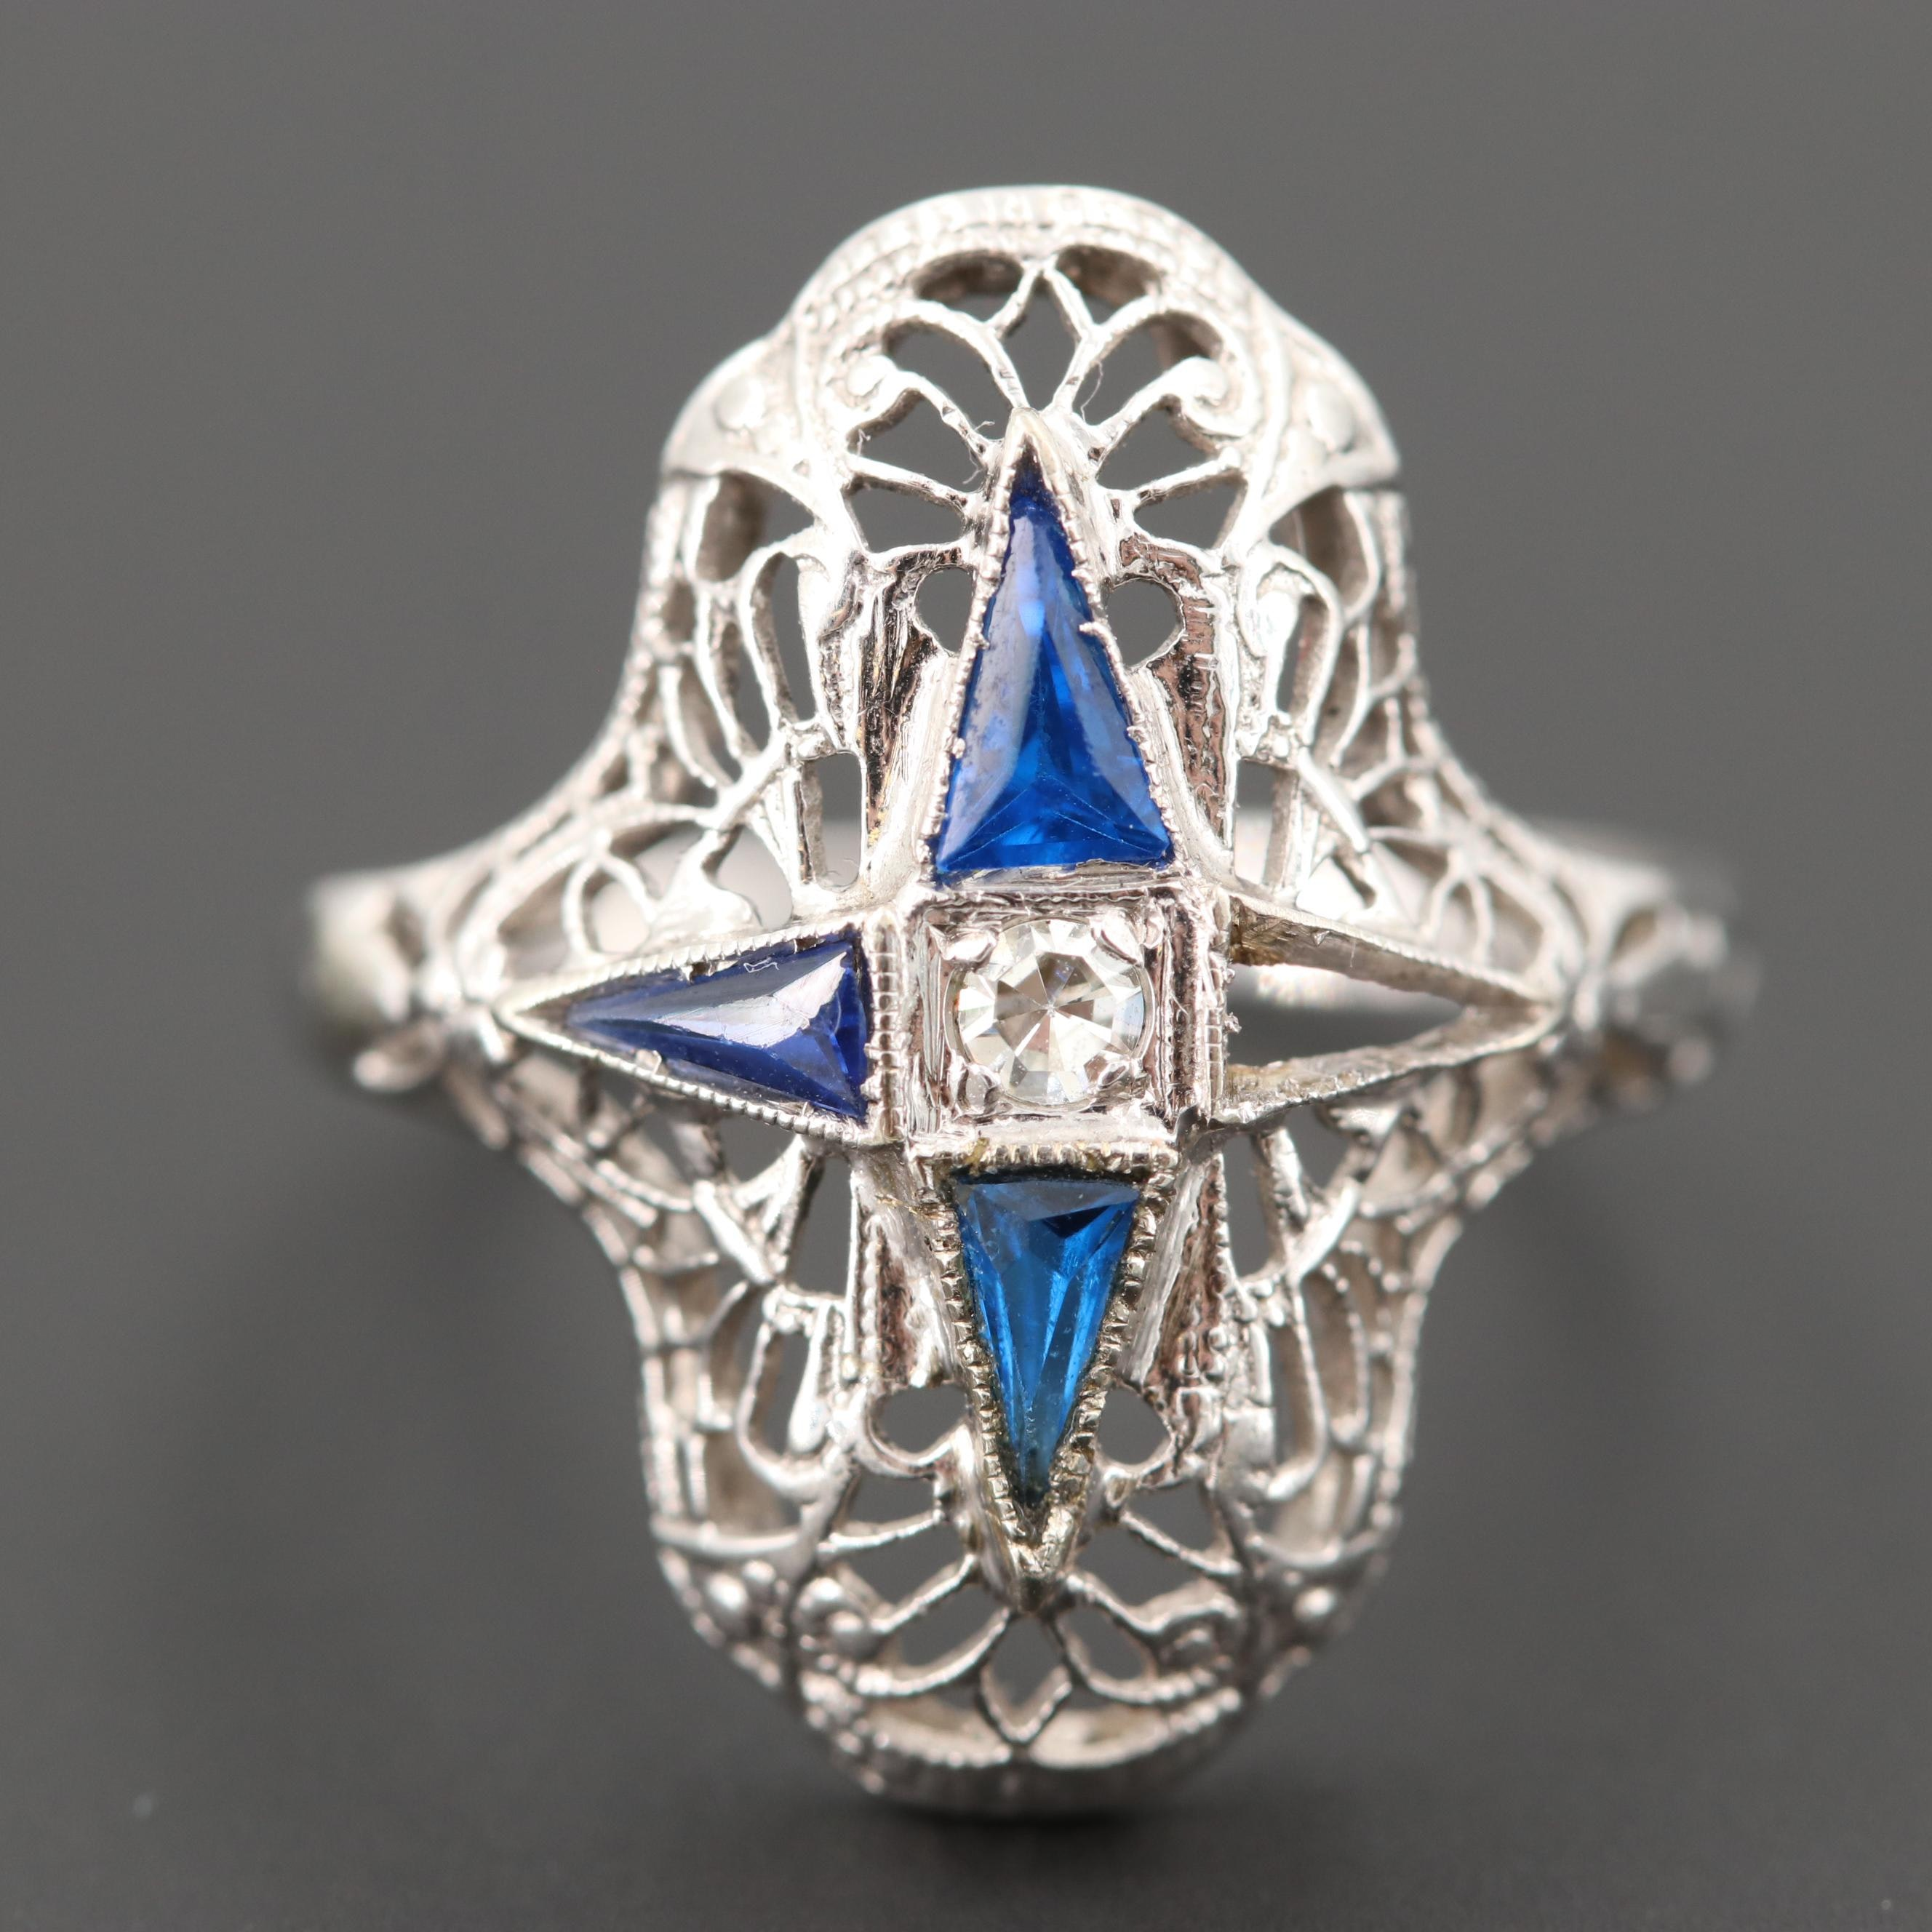 Art Deco 18K White Gold Diamond and Synthetic Blue Spinel Ring